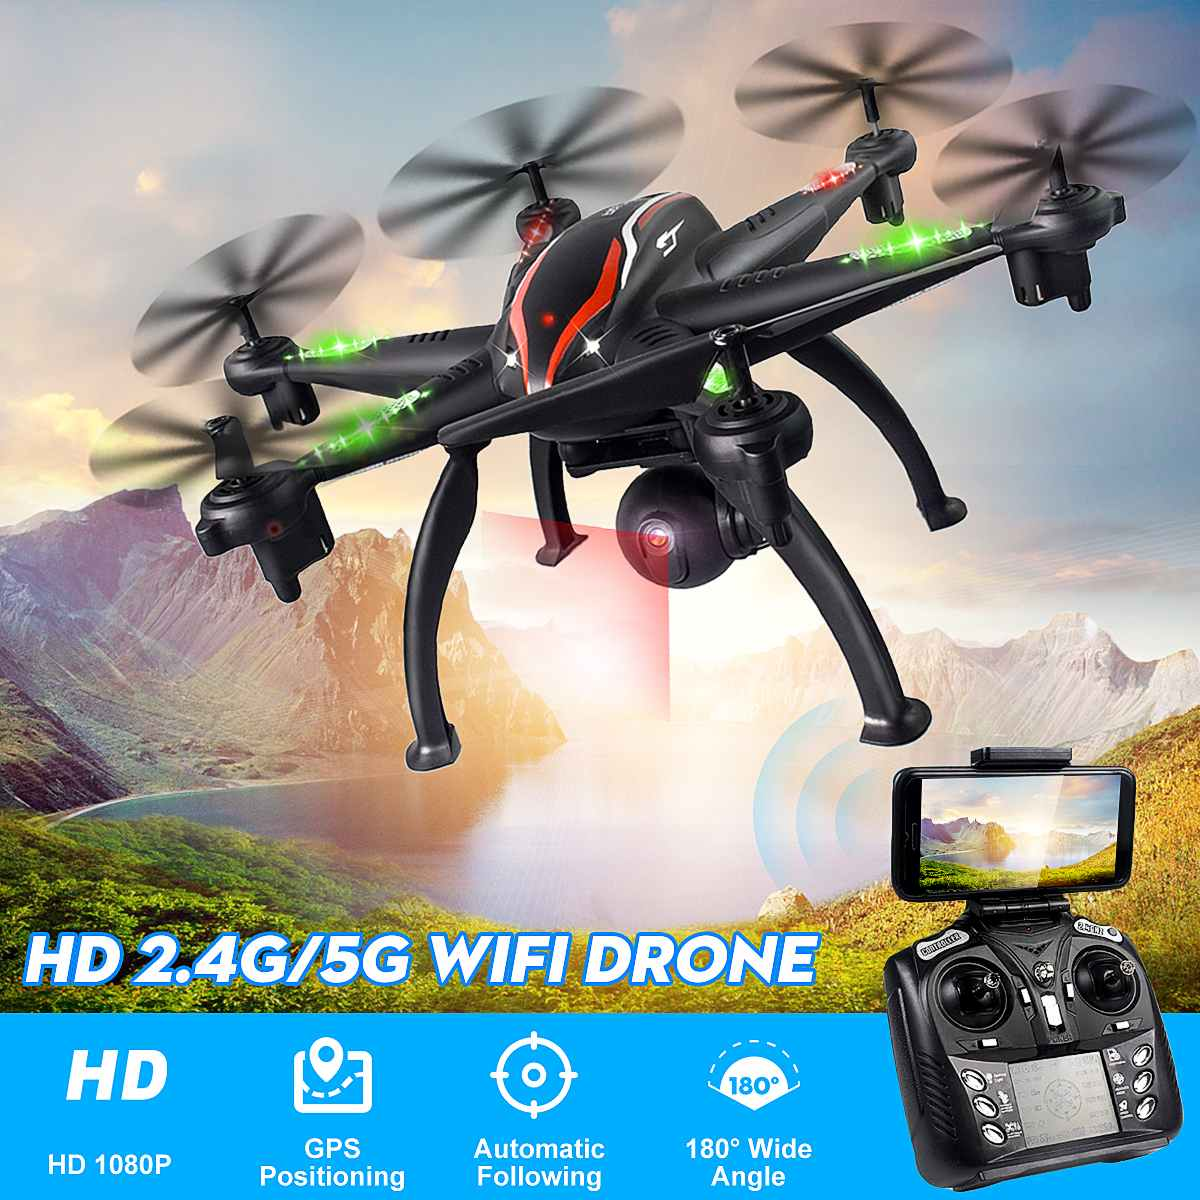 5G WiFi Drone Aerial Photography RC Camera Drone GPS 5G WiFi 1080P Camera Smart Follow Mode 6 Axis Gyro Quadcopter Professional image